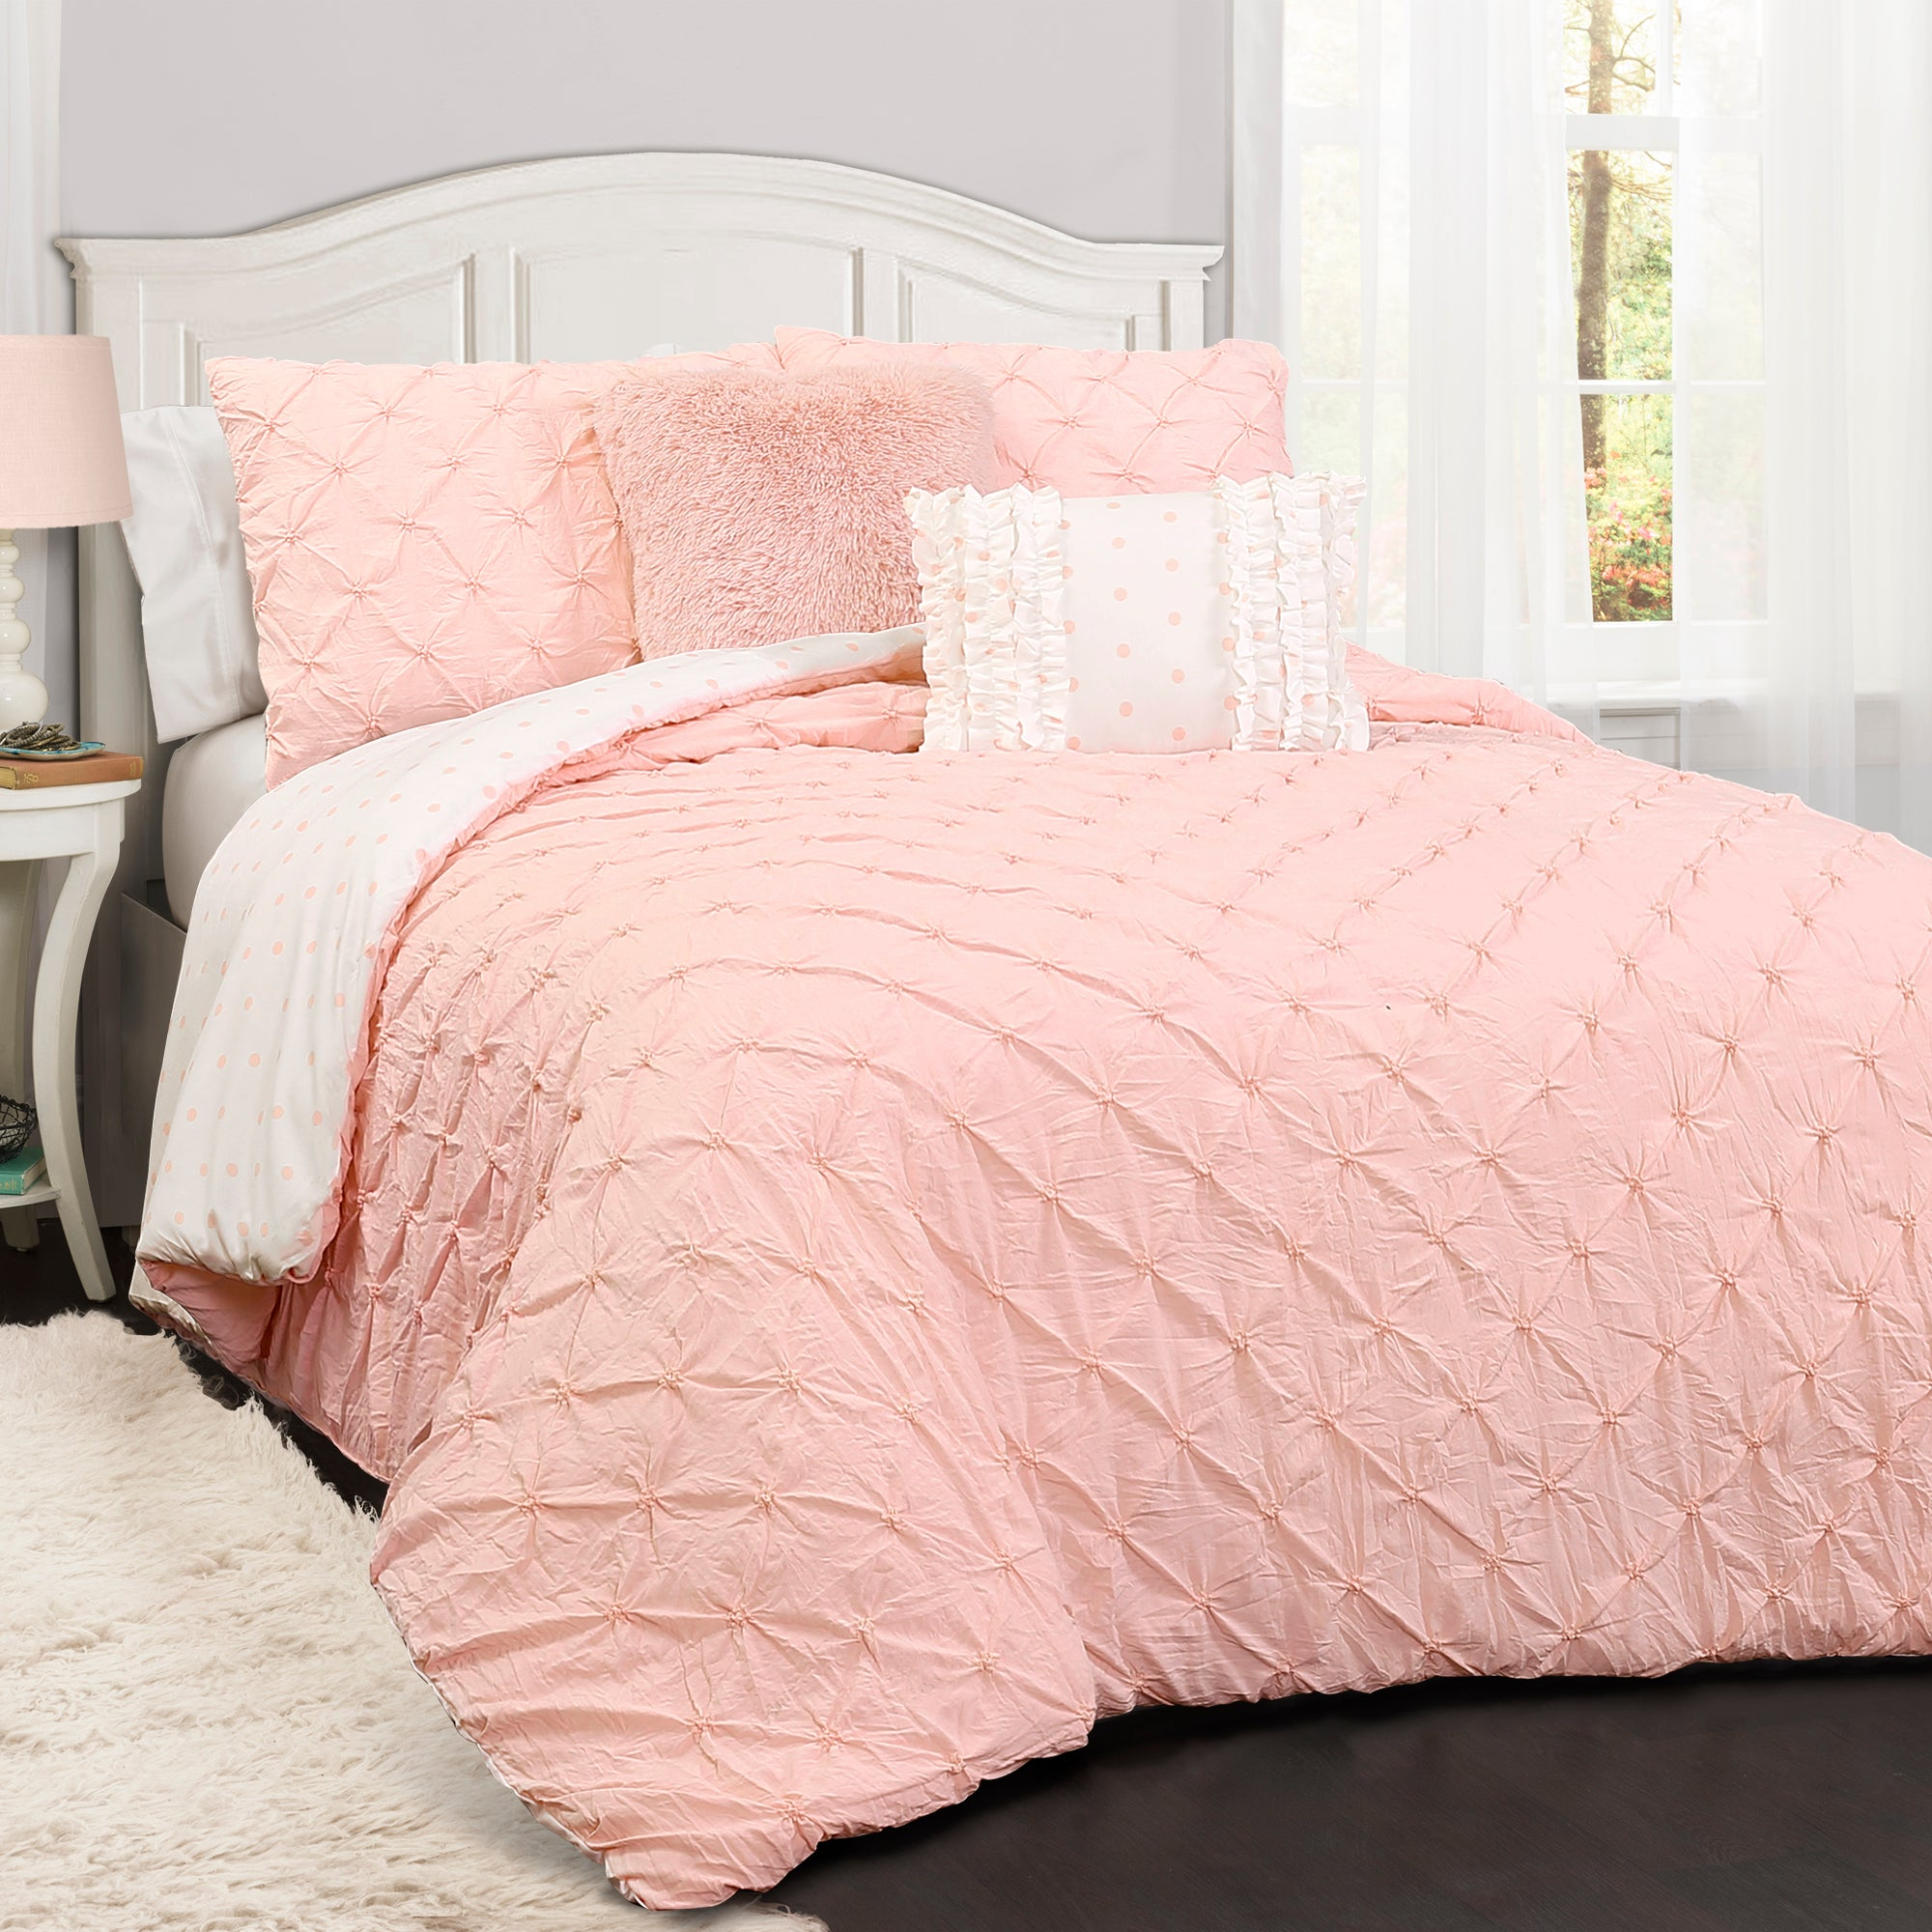 comforter ip com queen multiple piece sets hotel set decorative included home kids juvi vcny available colors fced pillows pink walmart bedding aedb